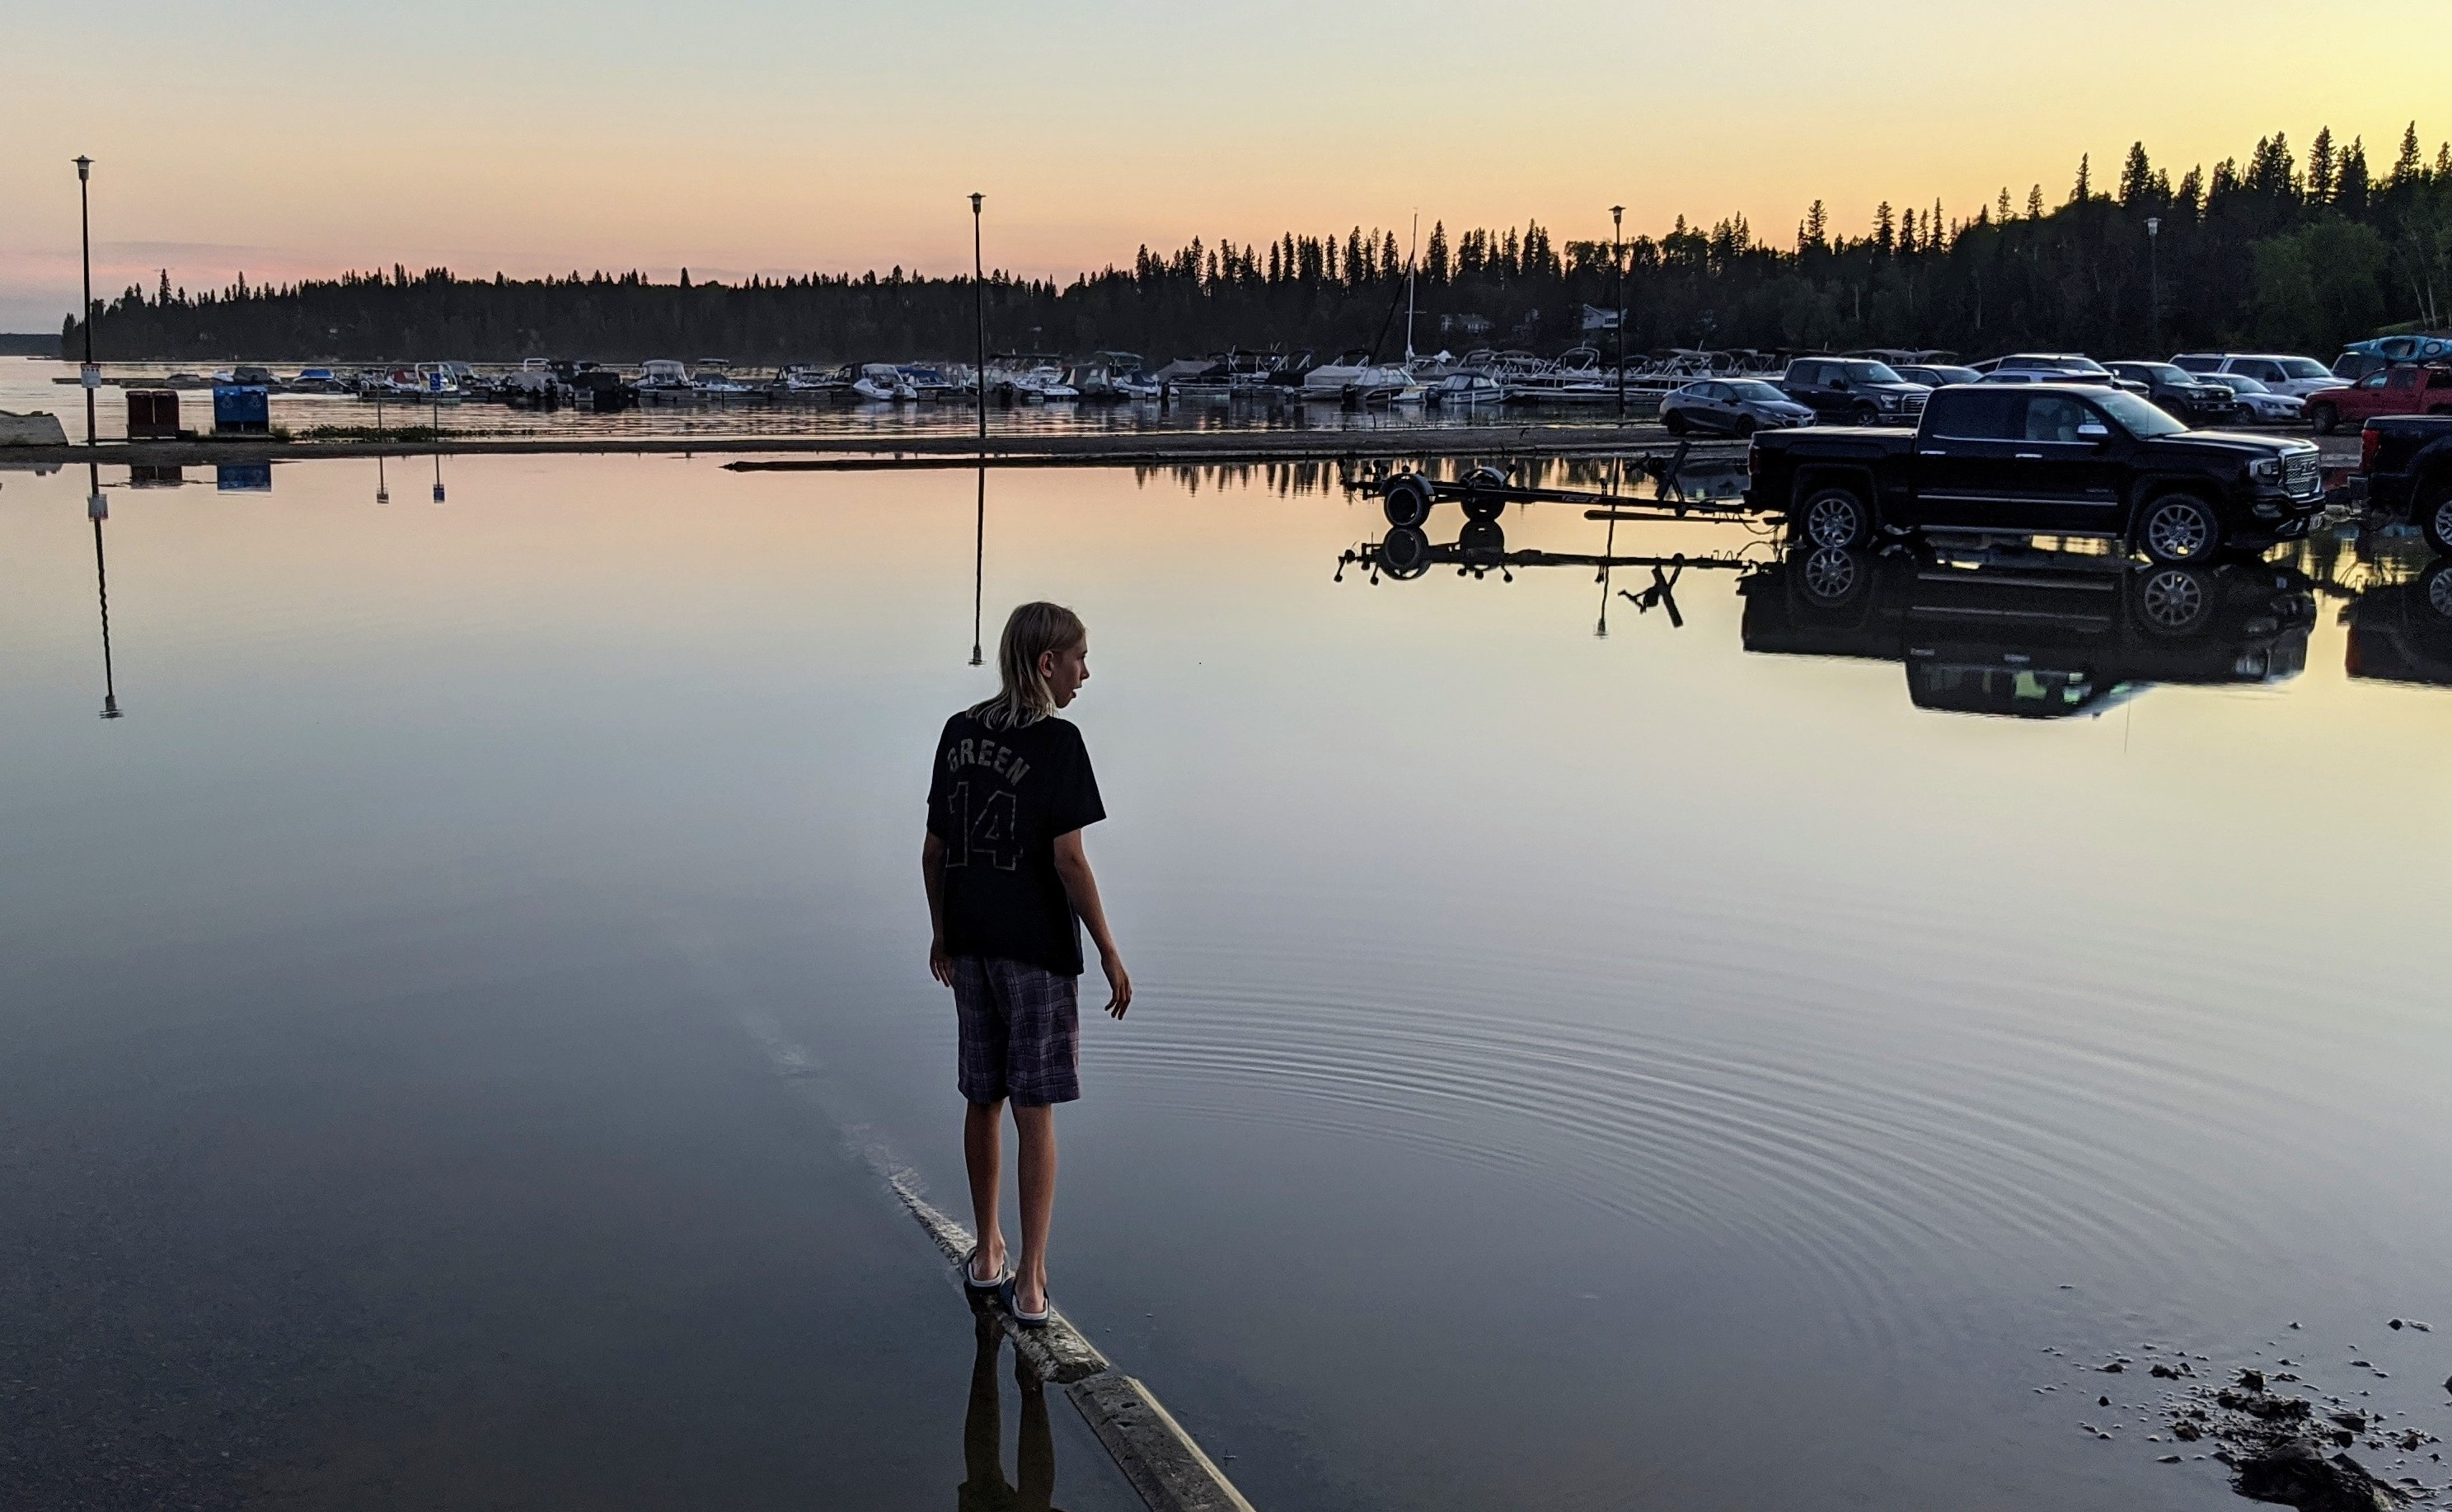 A young boy balances in the shallows of a flood in Paint Lake Provincial Park